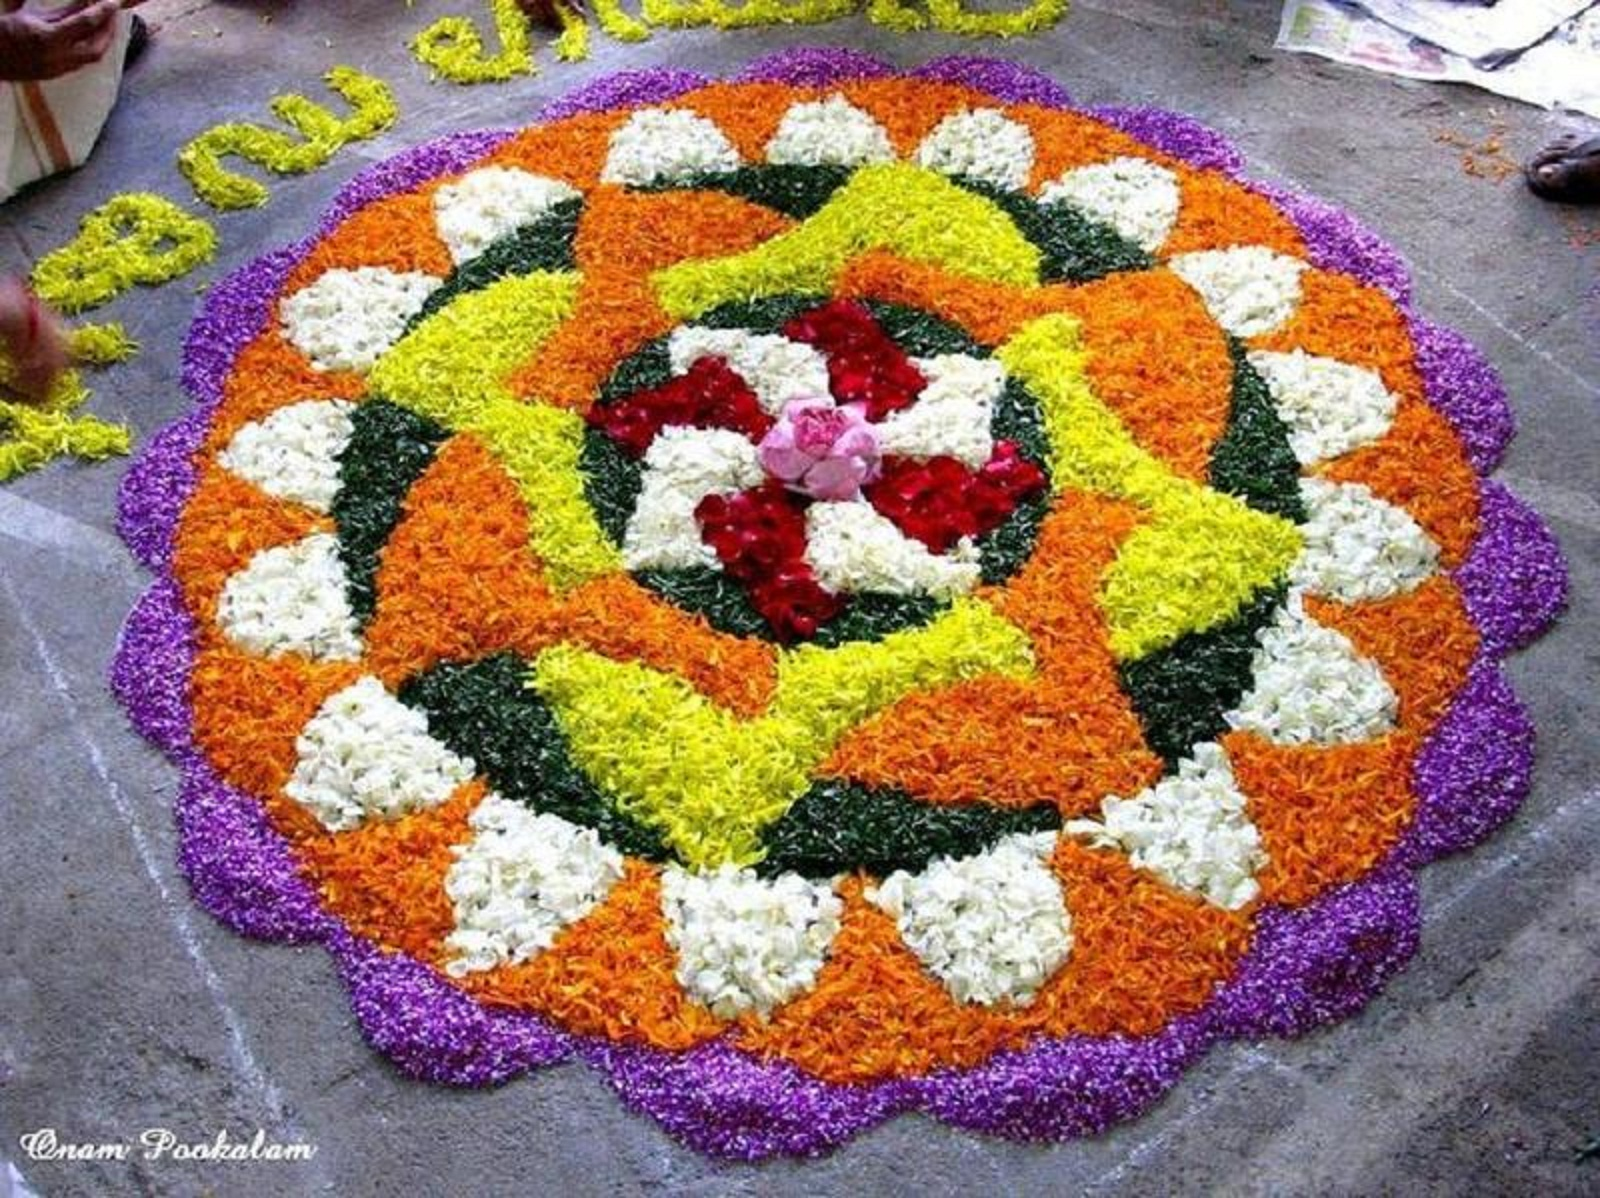 50 Incredible Onam Pookalam Rangoli Design Pictures And Images